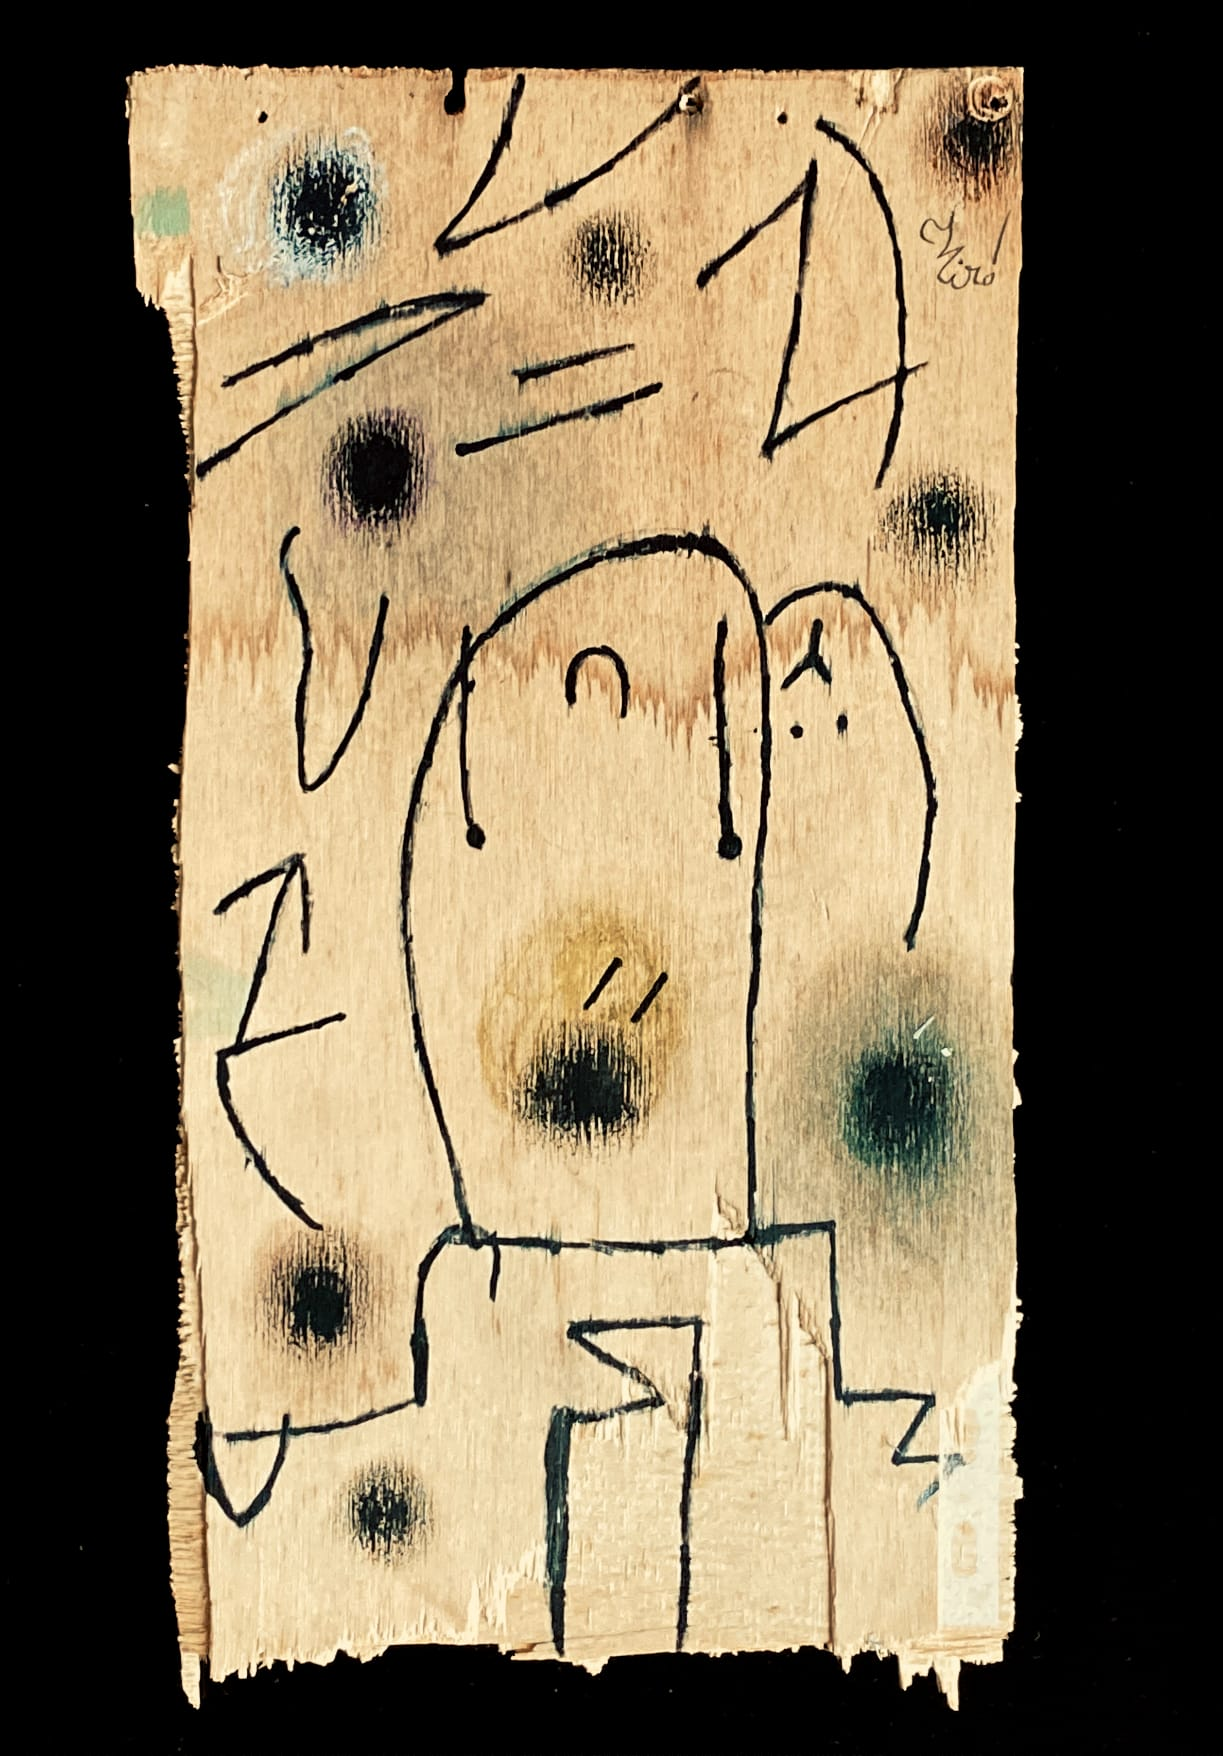 Joan Miro - Personages, Oiseau